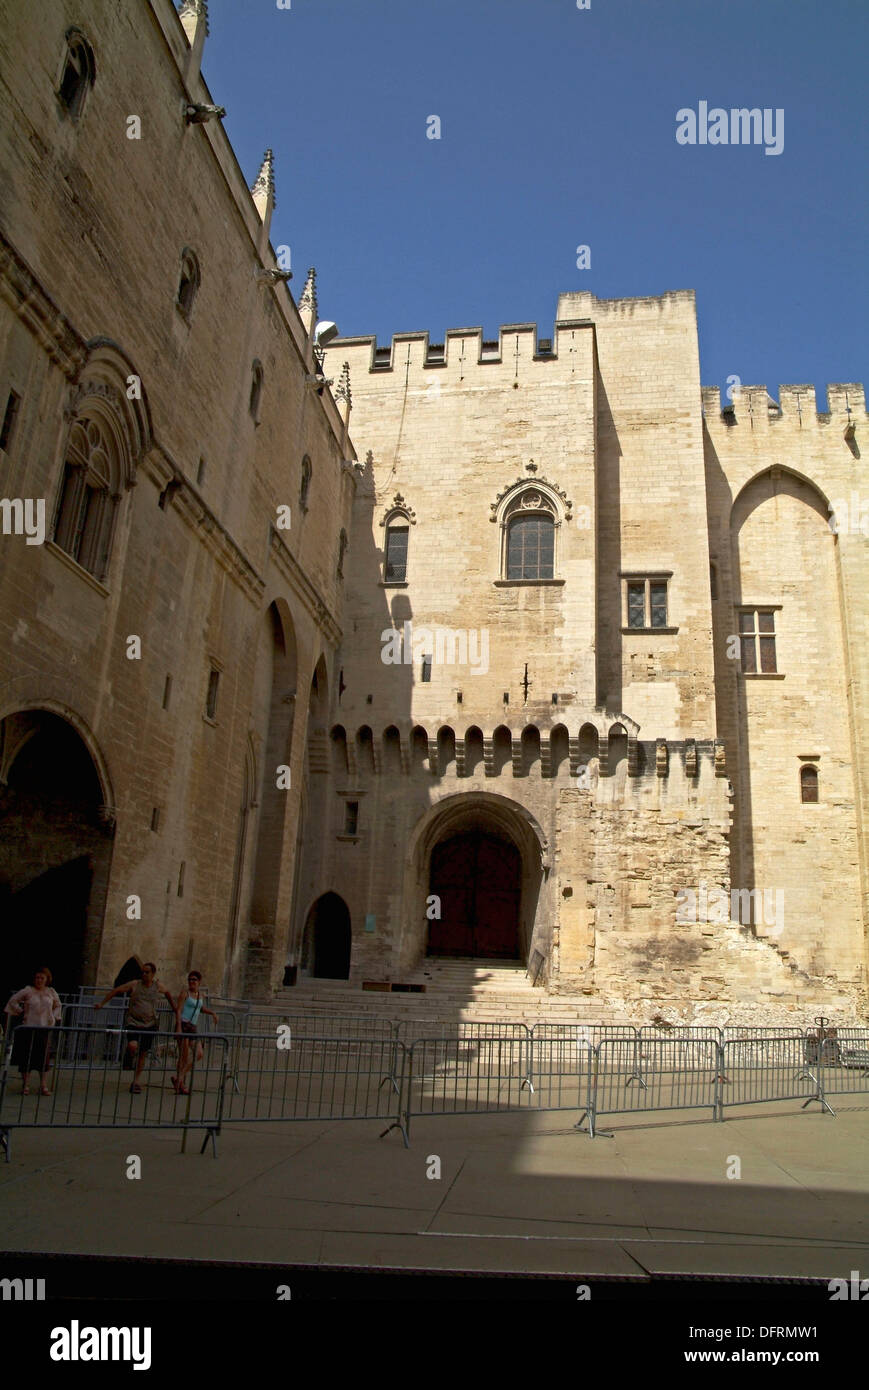 Popes' Palace Honours' Courtyard  Avignon  France - Stock Image